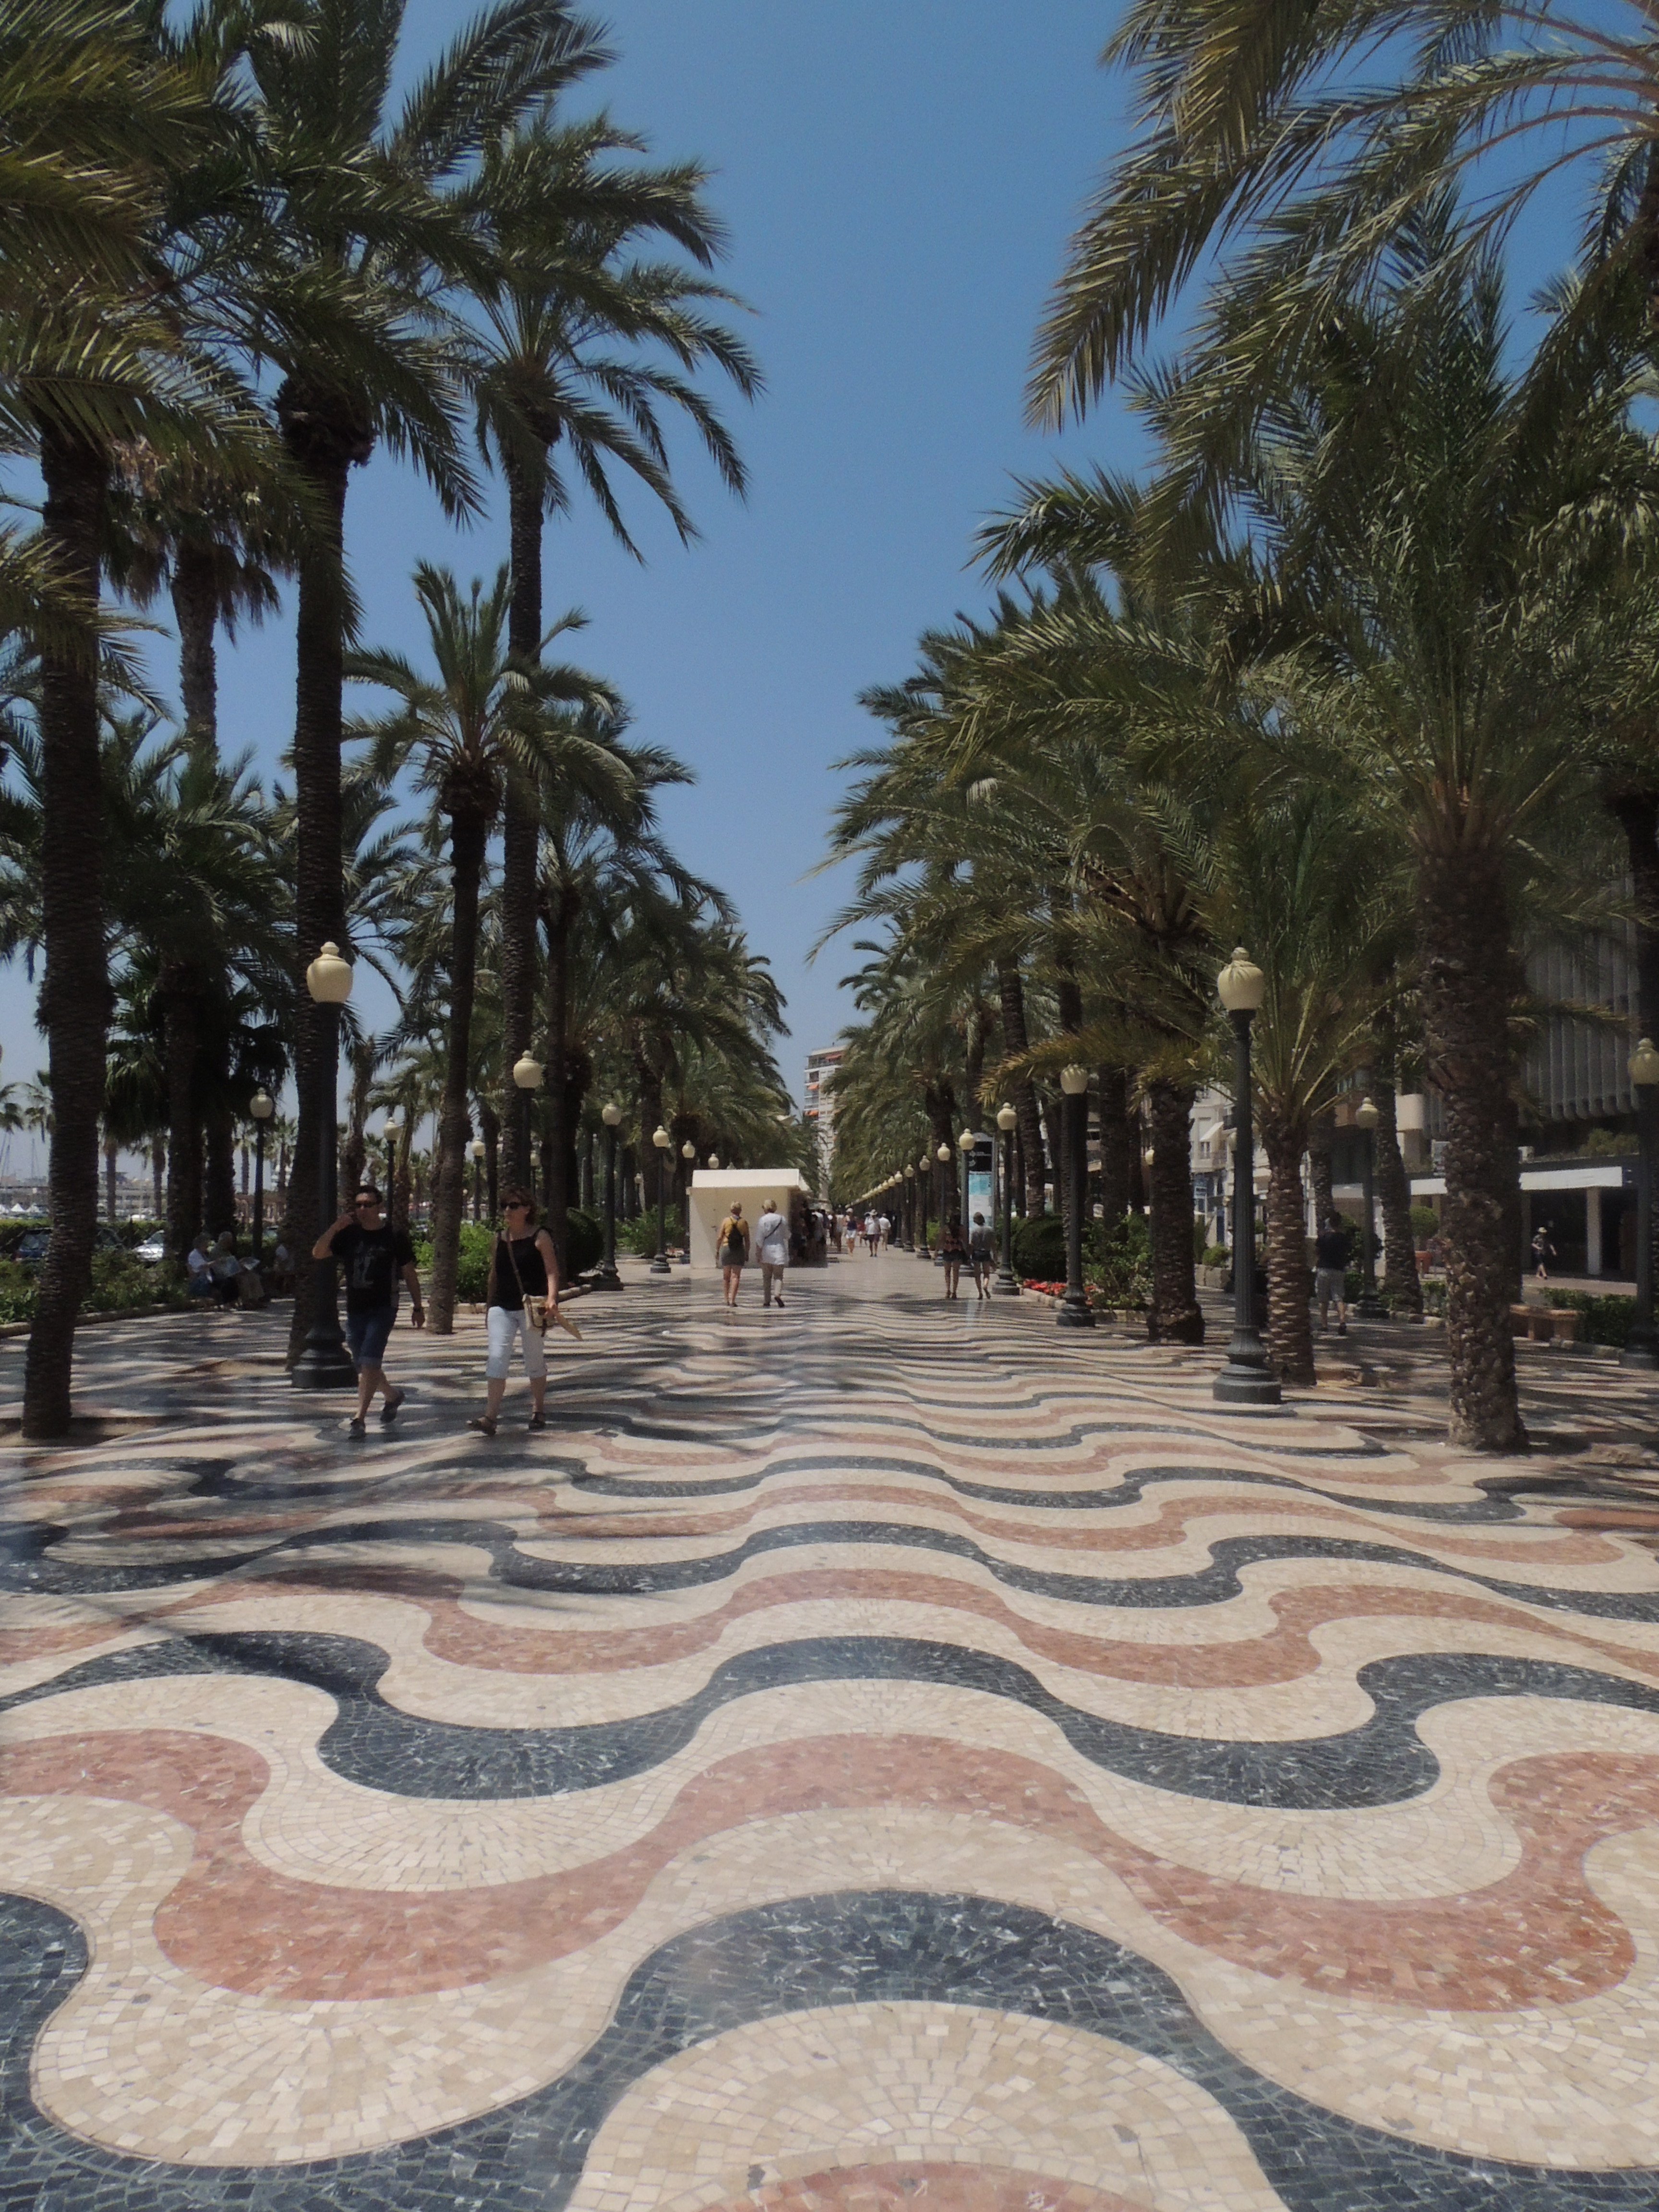 The mosiac walkway of Alicante that features on postcards